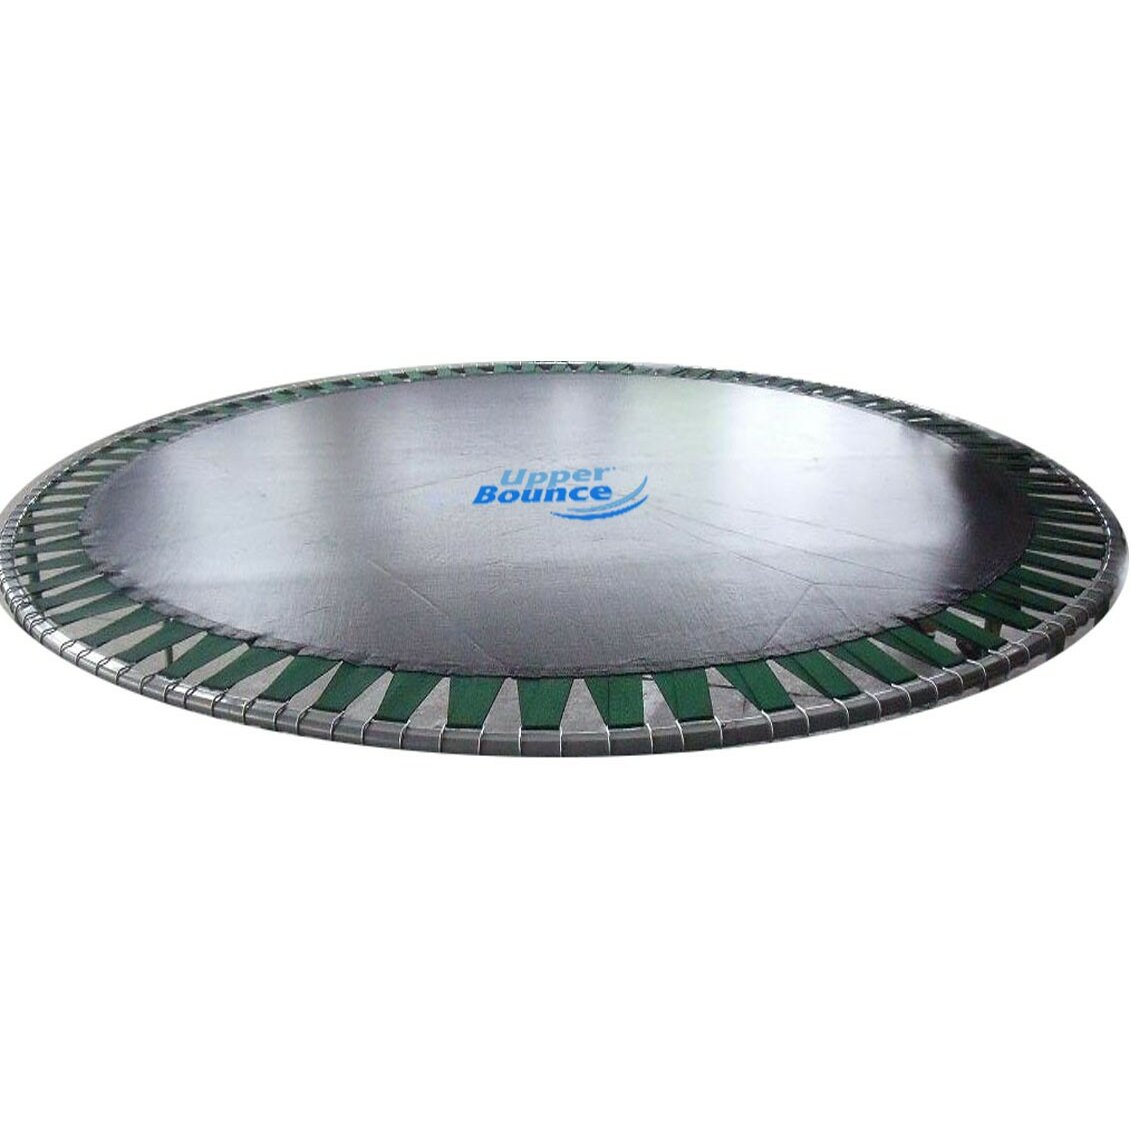 Upper Bounce 12' Jumping Surface For Trampoline & Reviews